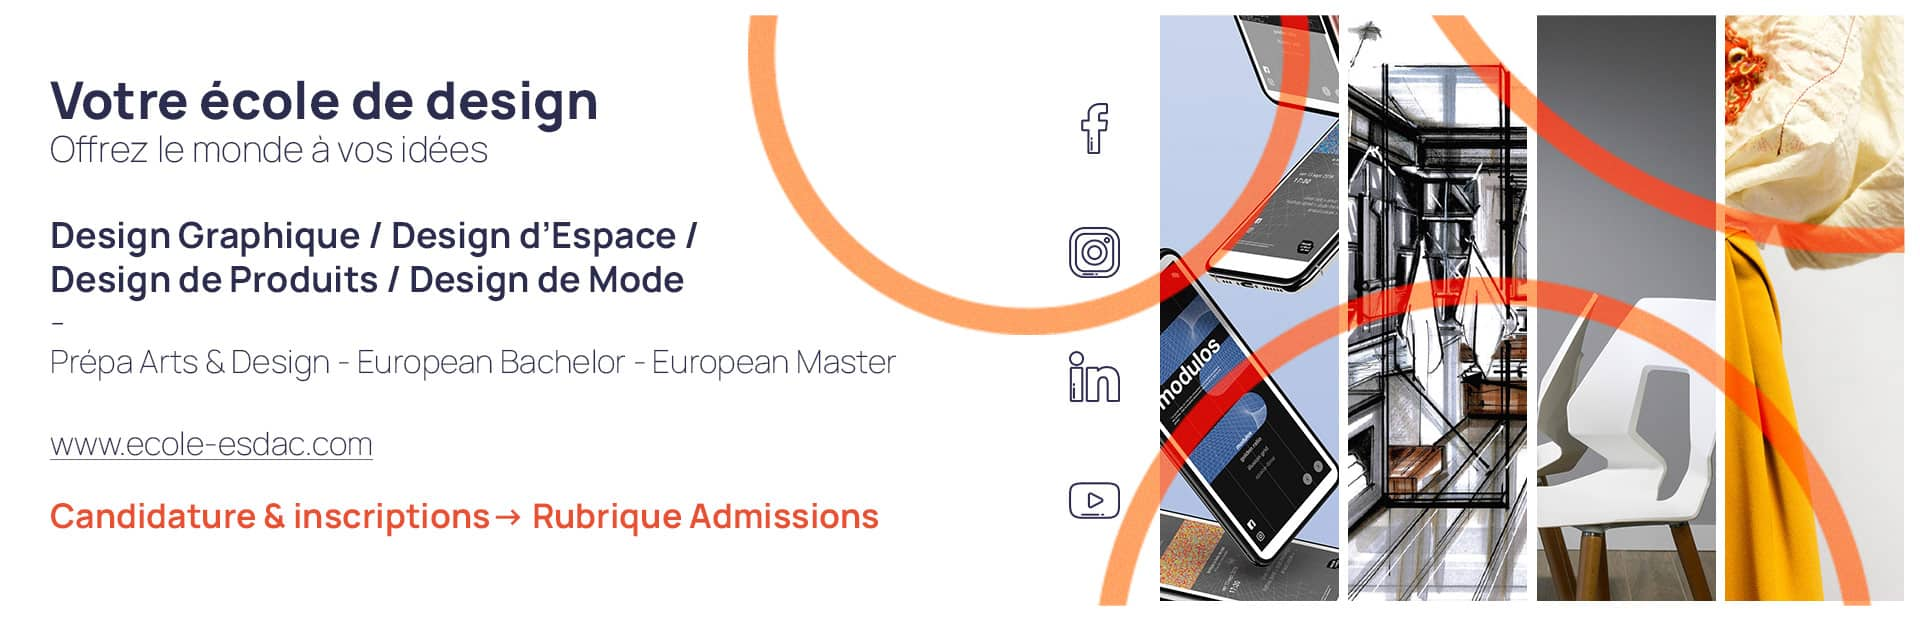 Ecole de design ESDAC en 2021, candidatures et inscriptions